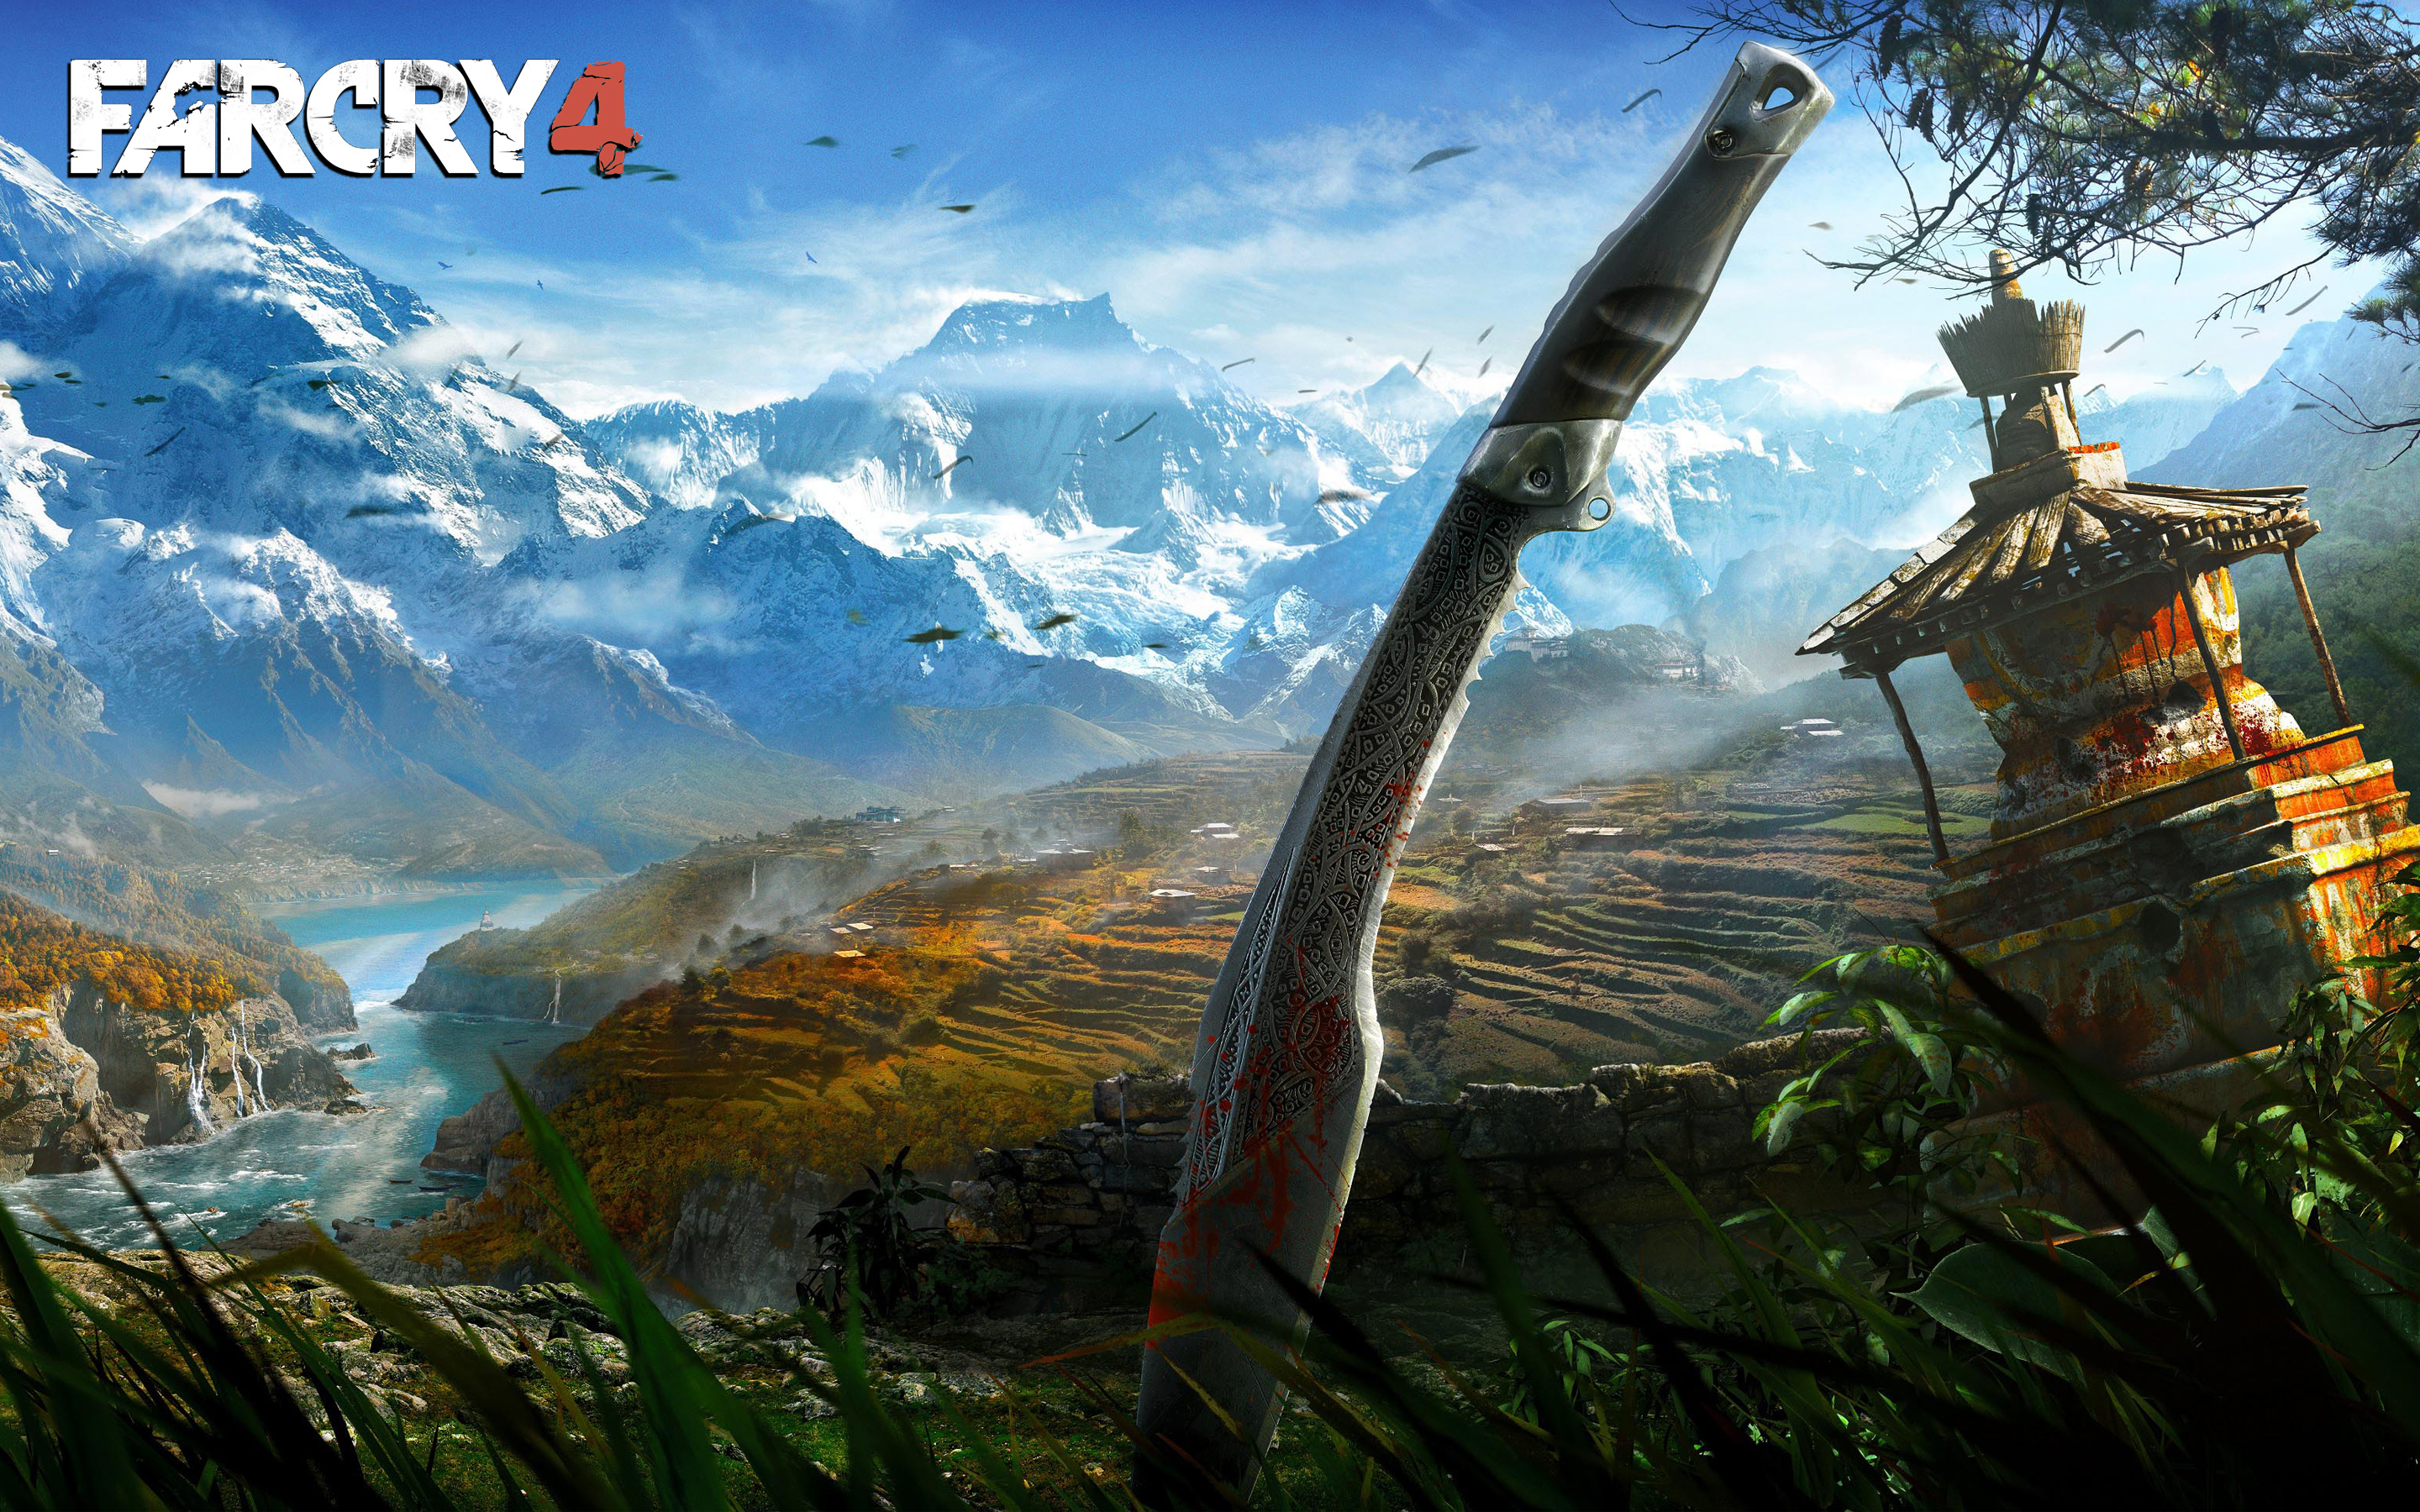 Free Download Far Cry 4 Himalayas Wallpapers Hd Wallpapers 2880x1800 For Your Desktop Mobile Tablet Explore 49 Far Cry 3 Wallpaper 1080p Cry Of Fear Wallpaper 1920x1080 Far Cry